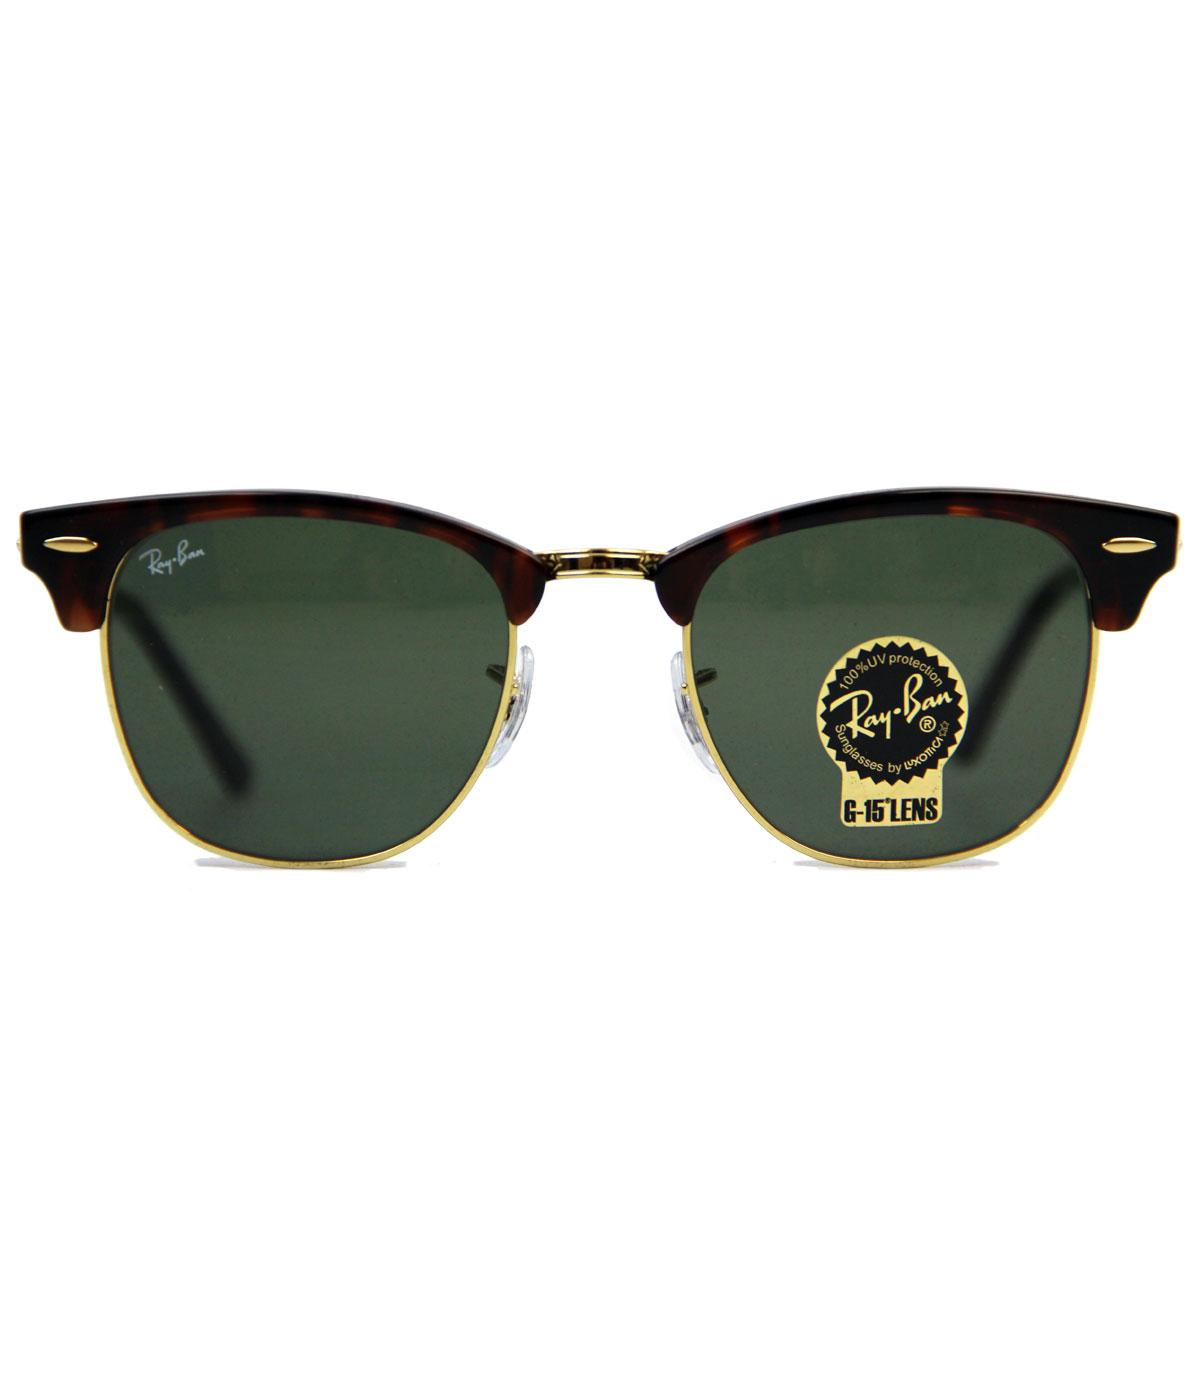 Ray-Ban Retro Mod Clubmaster Indie Sunglasses (Br)